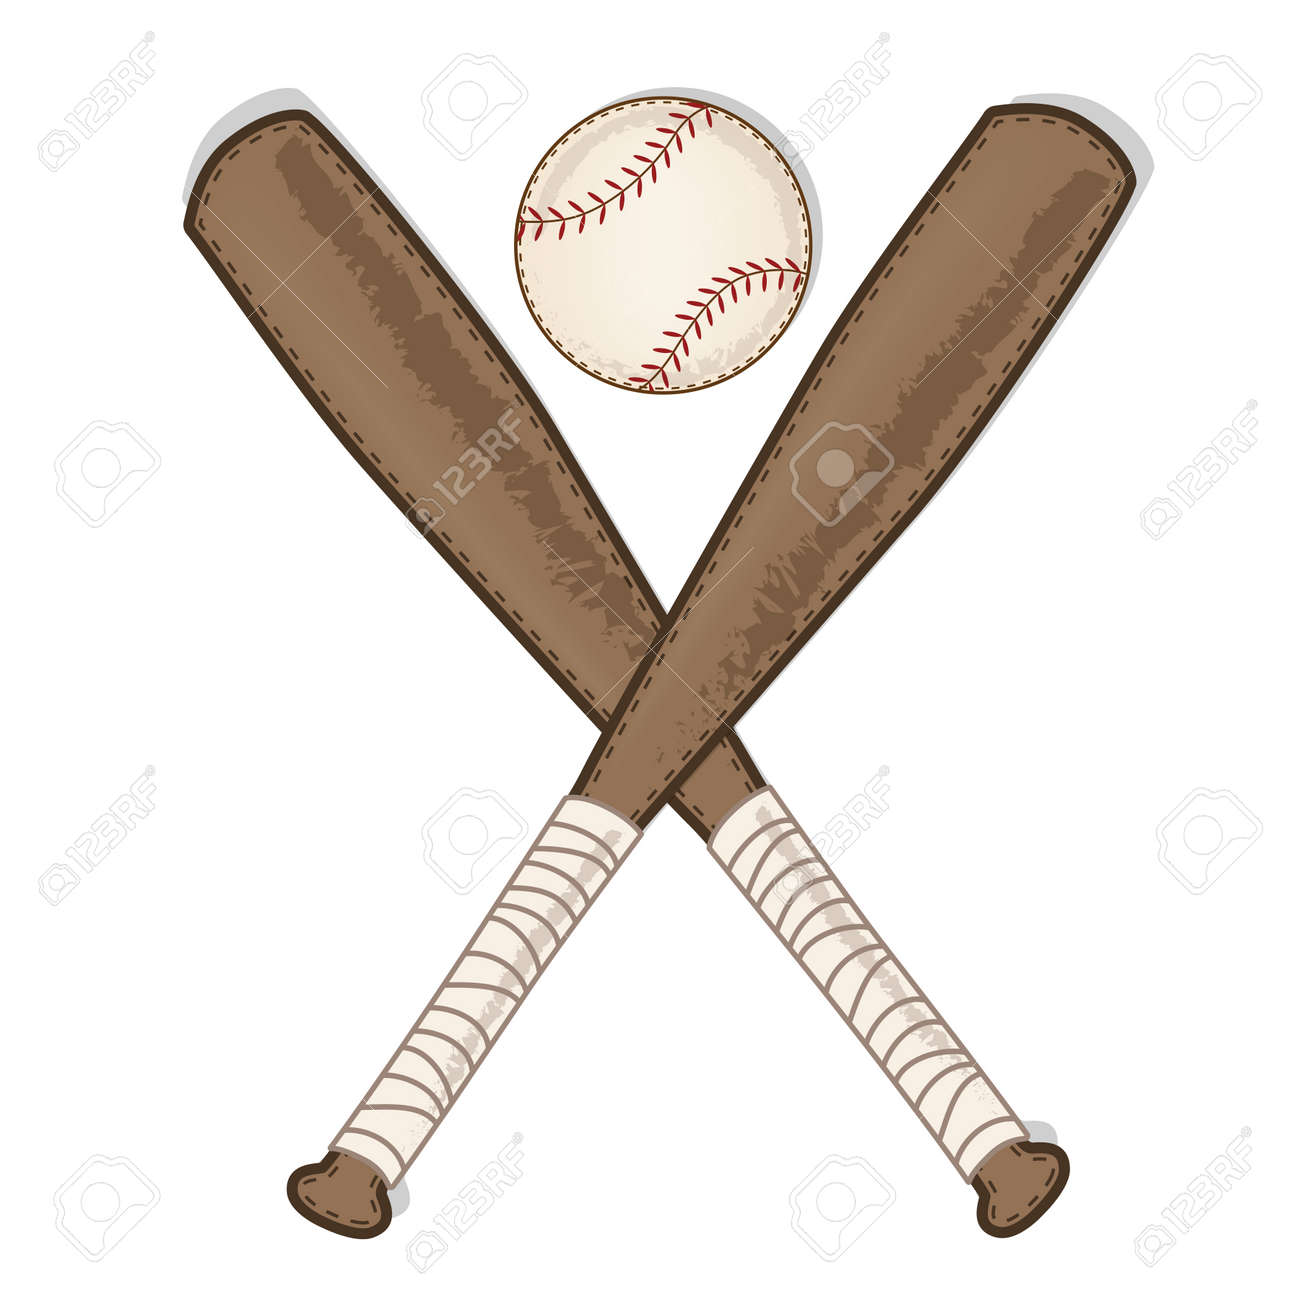 Vintage Baseball And Wooden Bat On Transparent Background Vector